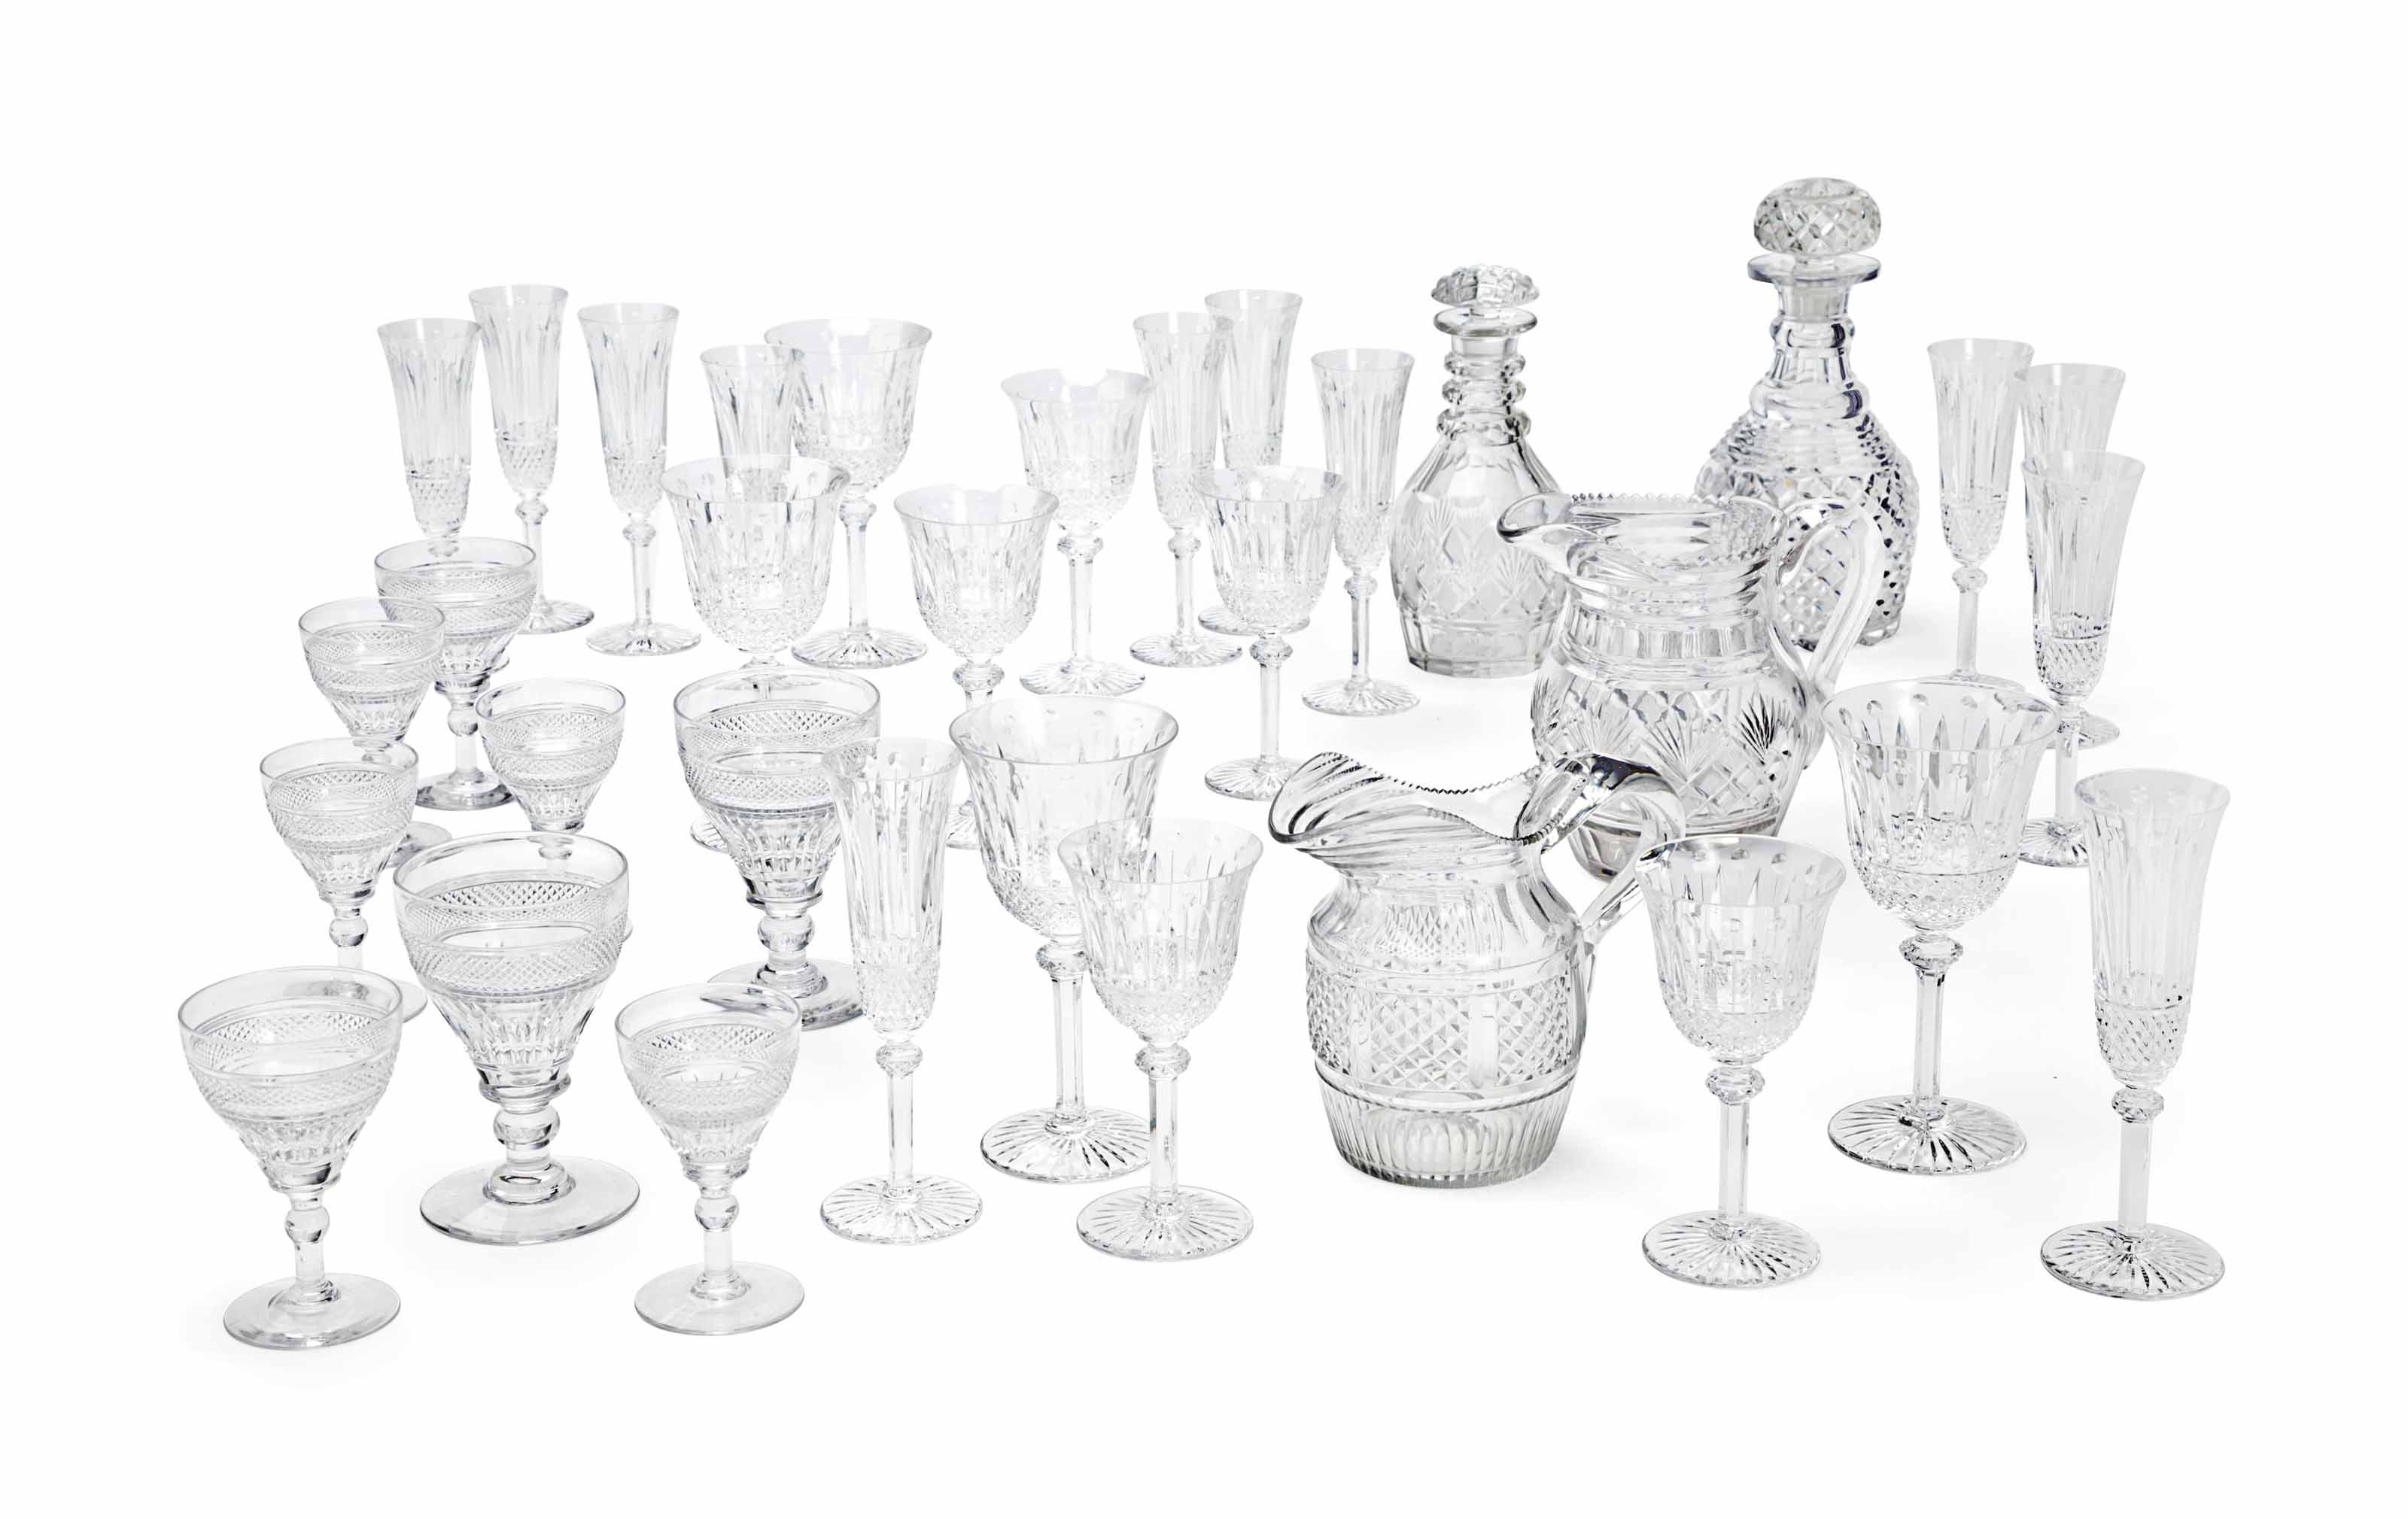 TWO FRENCH AND CONTINENTAL CUT-GLASS PART STEMWARE SERVICES